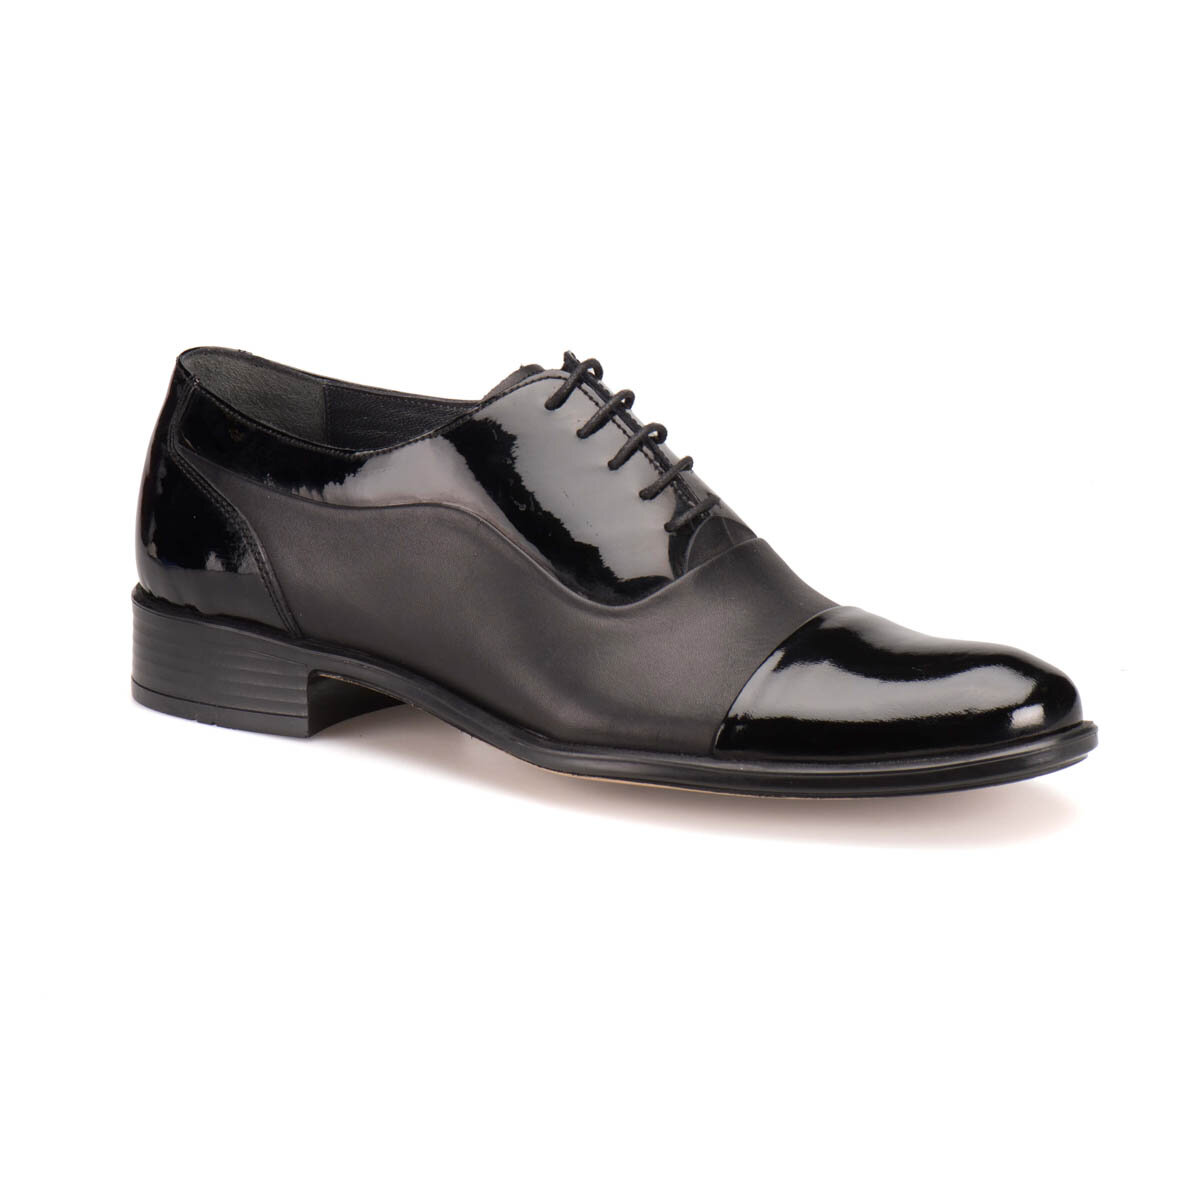 FLO 409 M 1455 Black Men 'S Classic Shoes Garamond